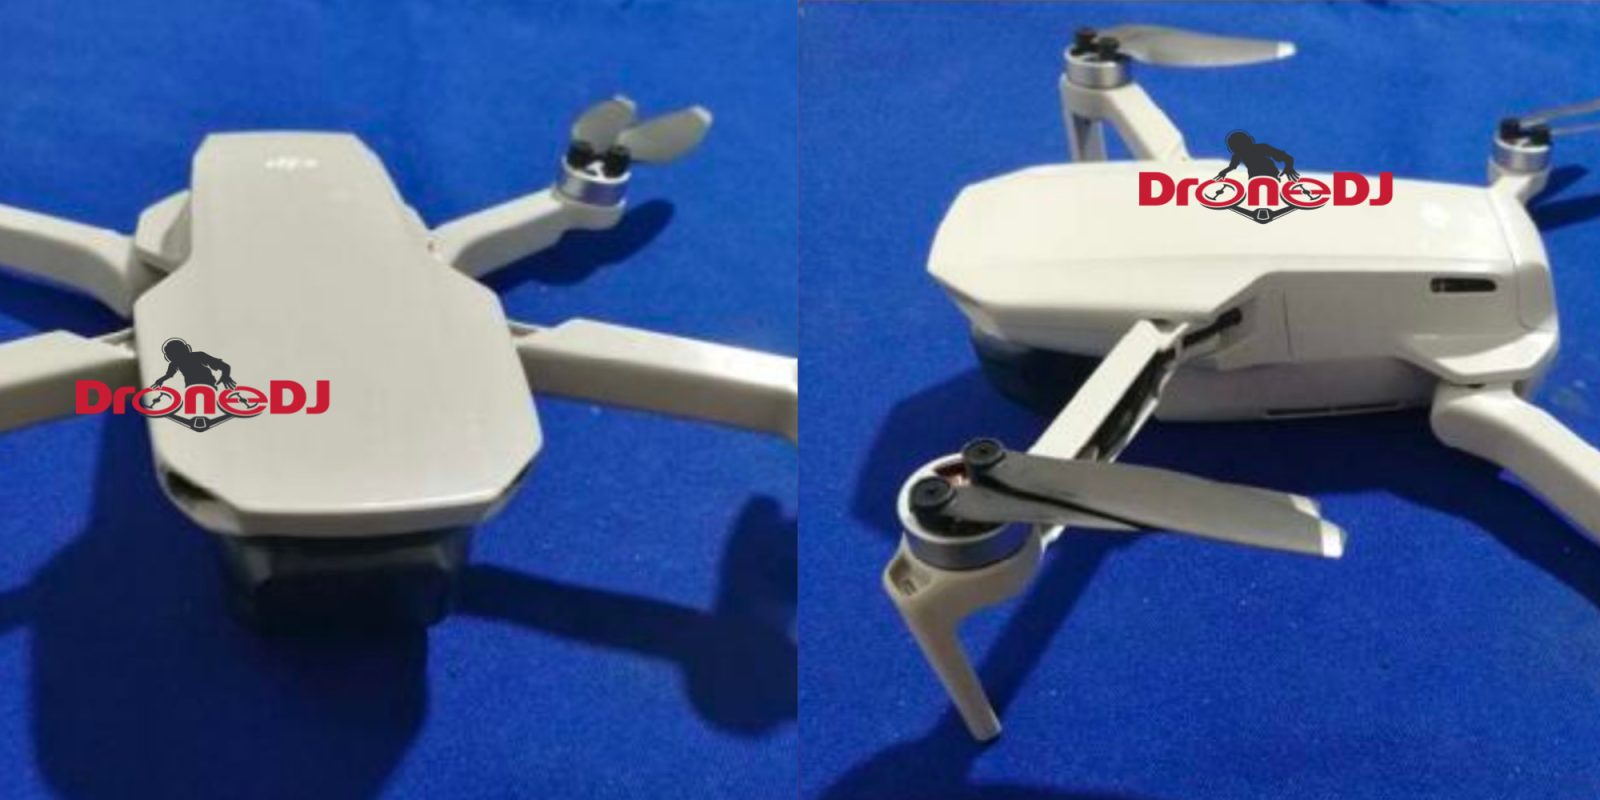 DroneDJ - Spinning news, information and reviews on the drone ecosystem